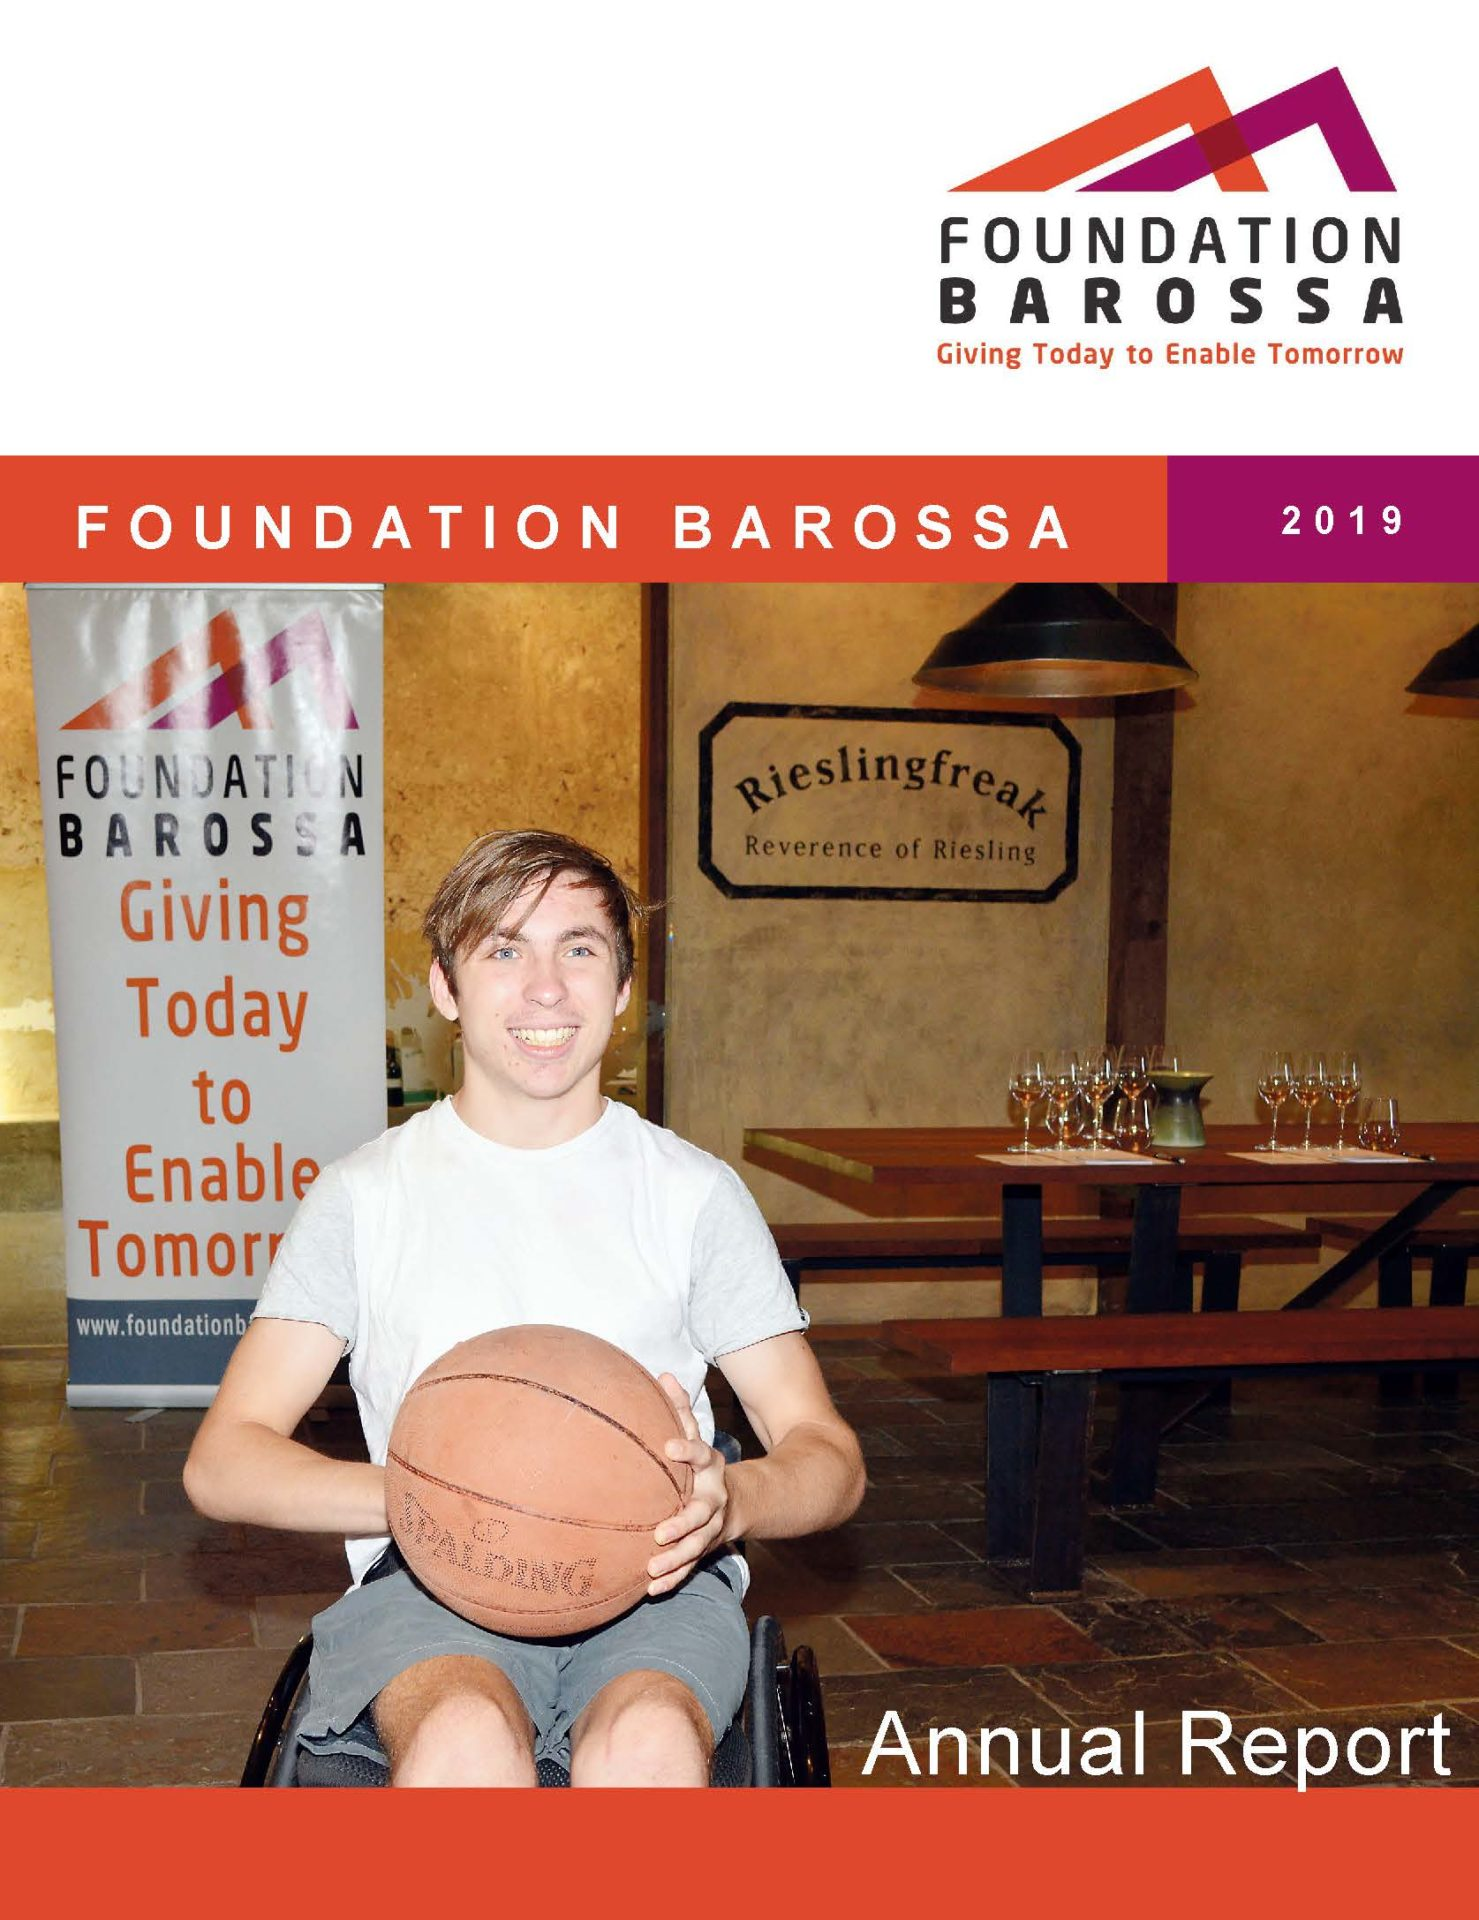 2019 Foundation Barossa Annual Report